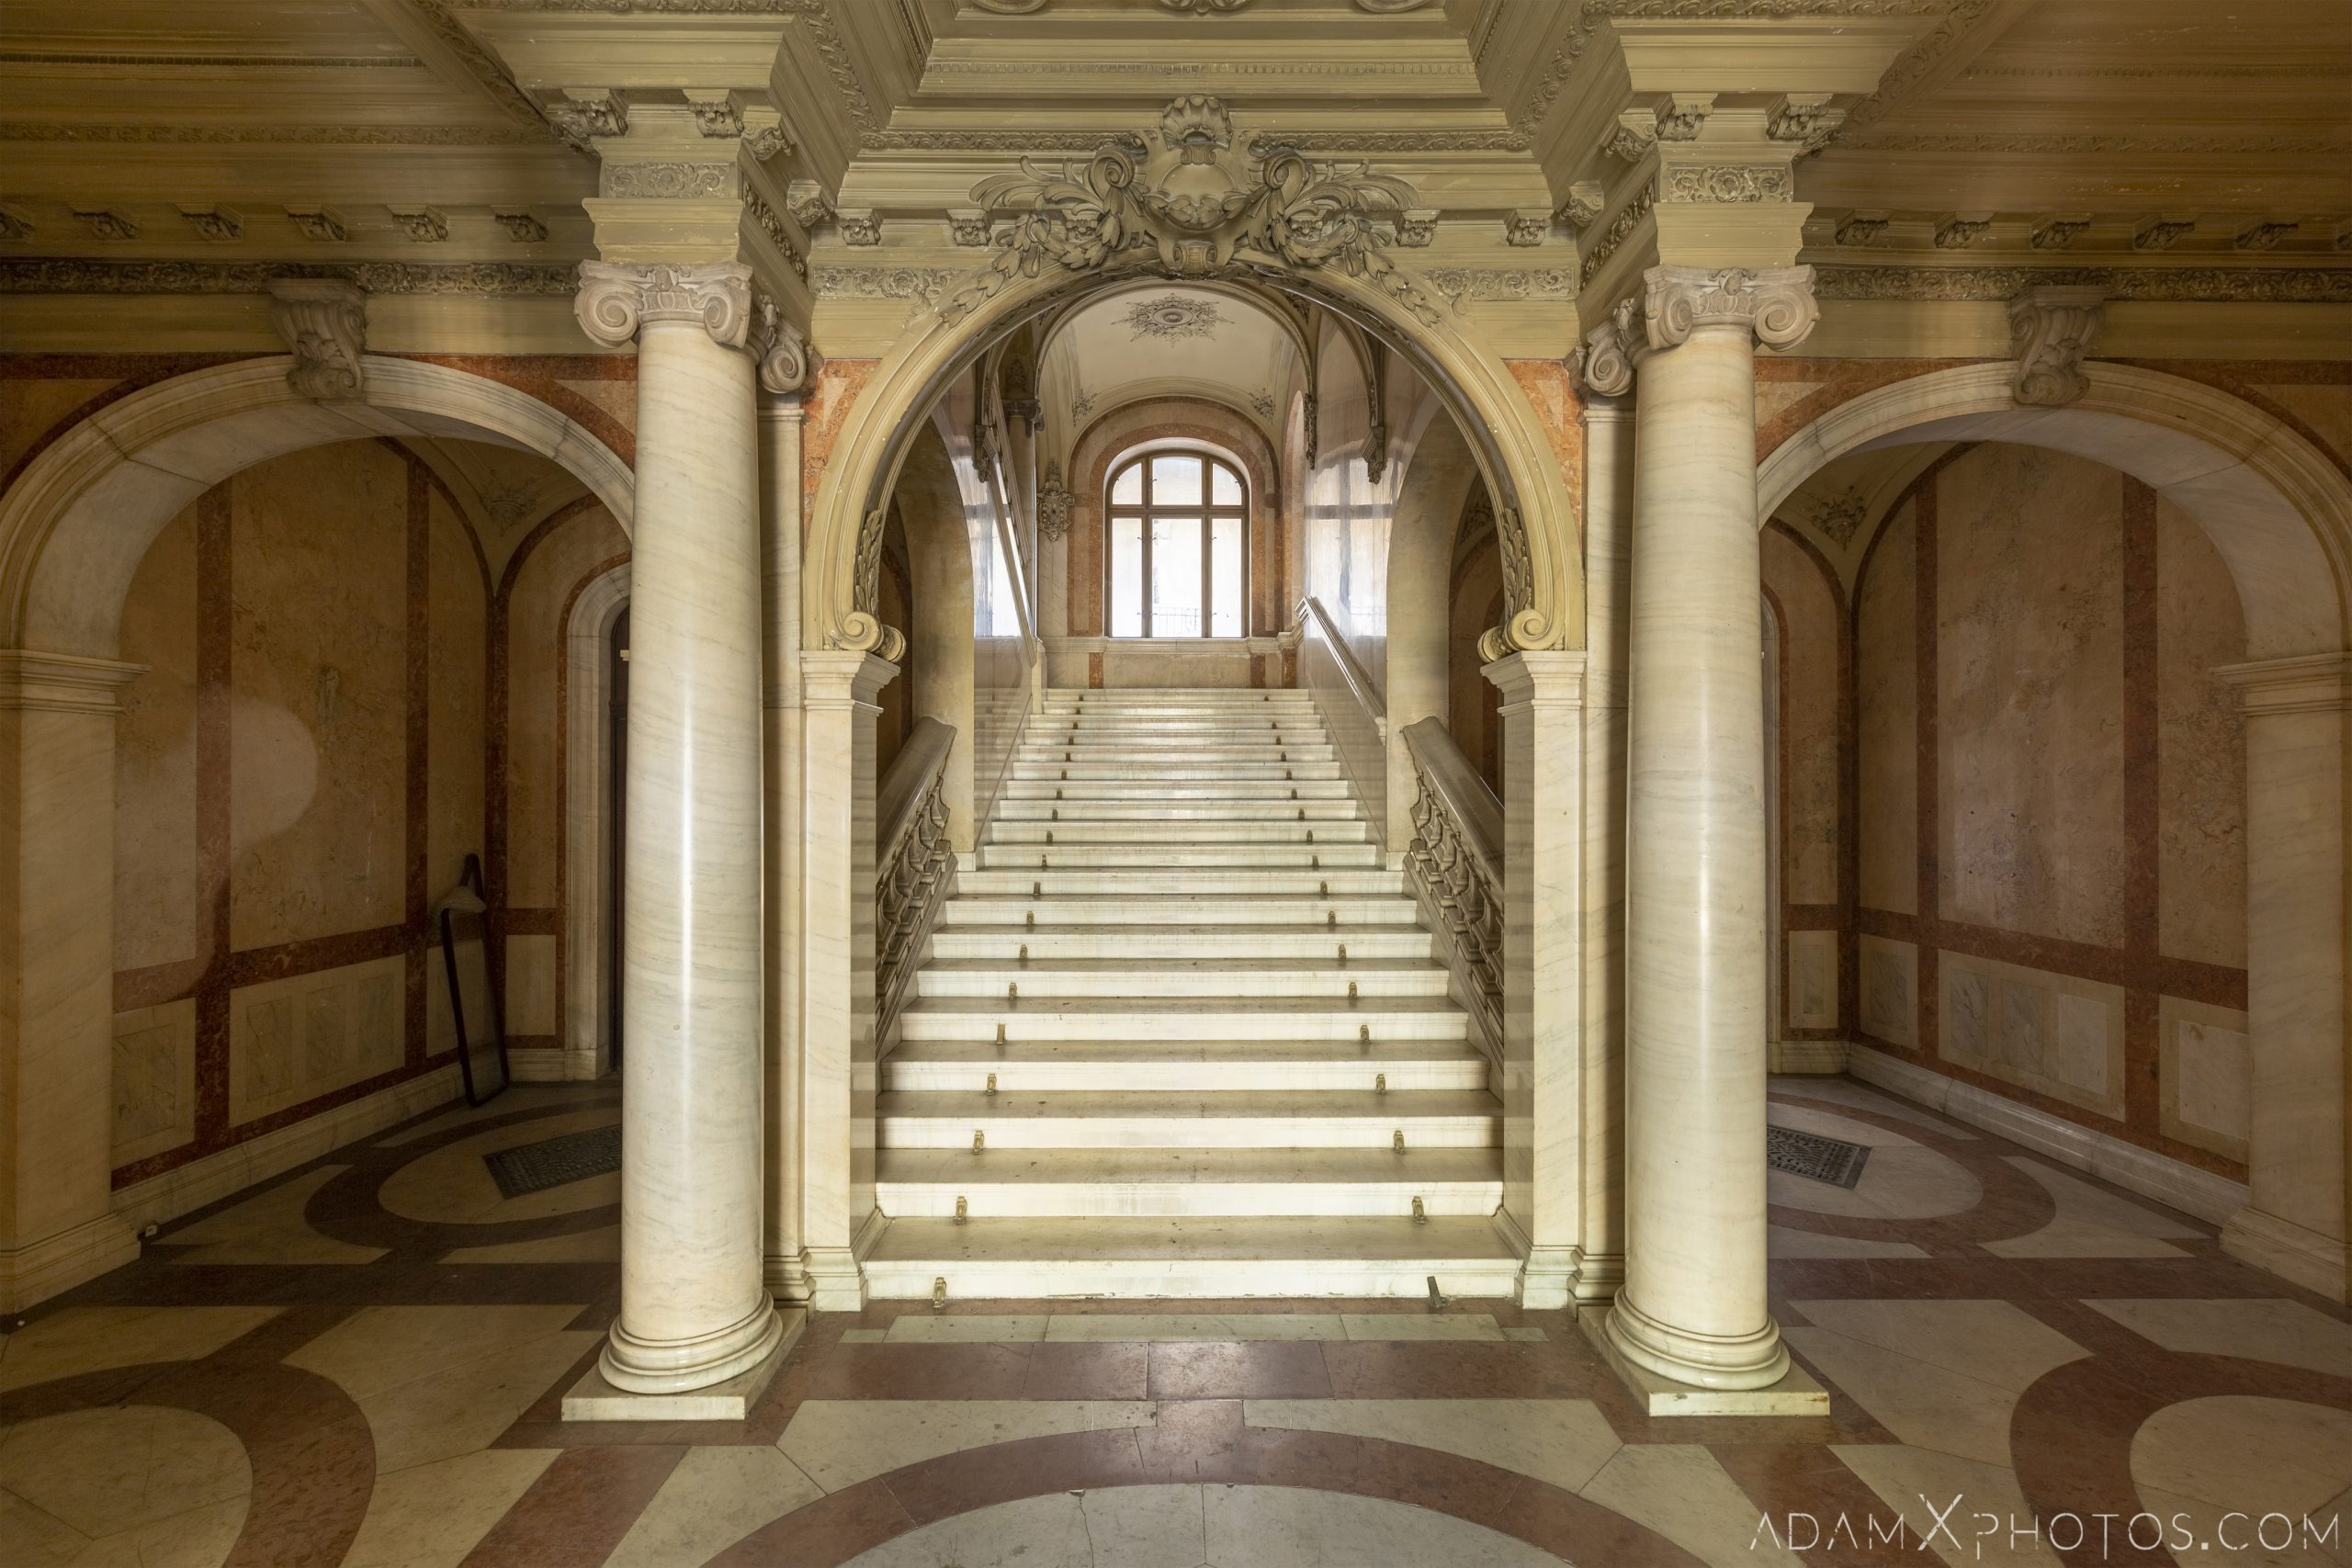 Entrance lobby foyer reception hall marble arches Adria Palace Budapest Hungary Adam X Urbex Urban Exploration Access 2018 Blade Runner 2049 Abandoned decay ruins lost forgotten derelict location creepy haunting eerie security ornate grand neo baroque